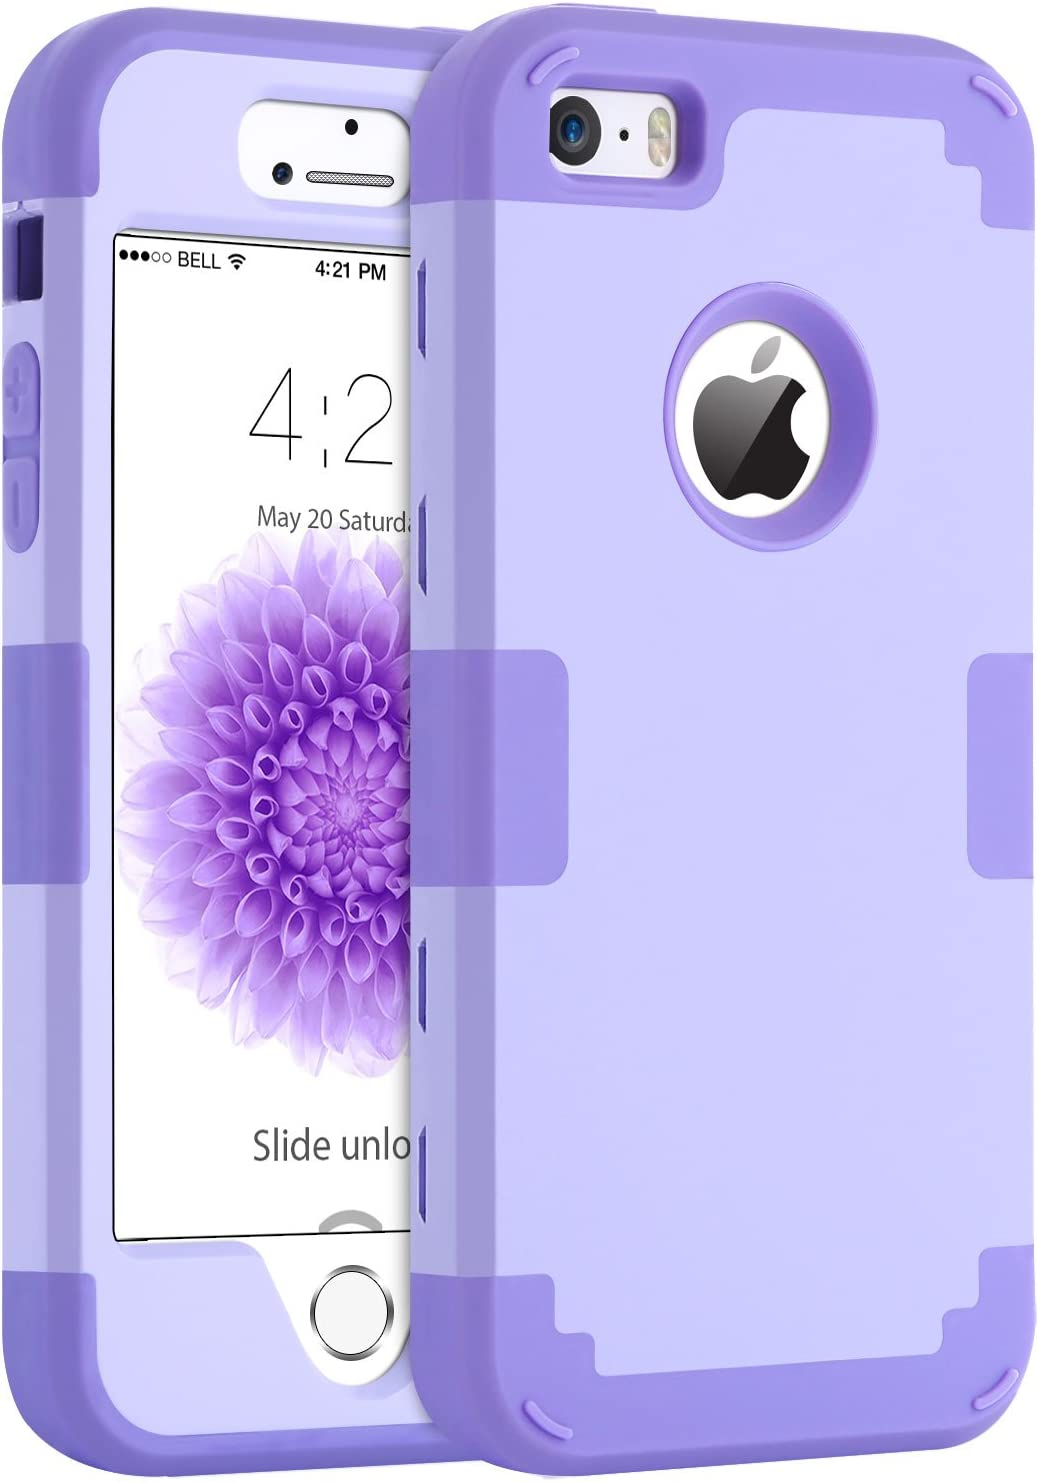 iPhone 5S Case iPhone SE iPhone 5 Case BENTOBEN Shockproof Protective Case for iPhone SE 5S 5 Purple